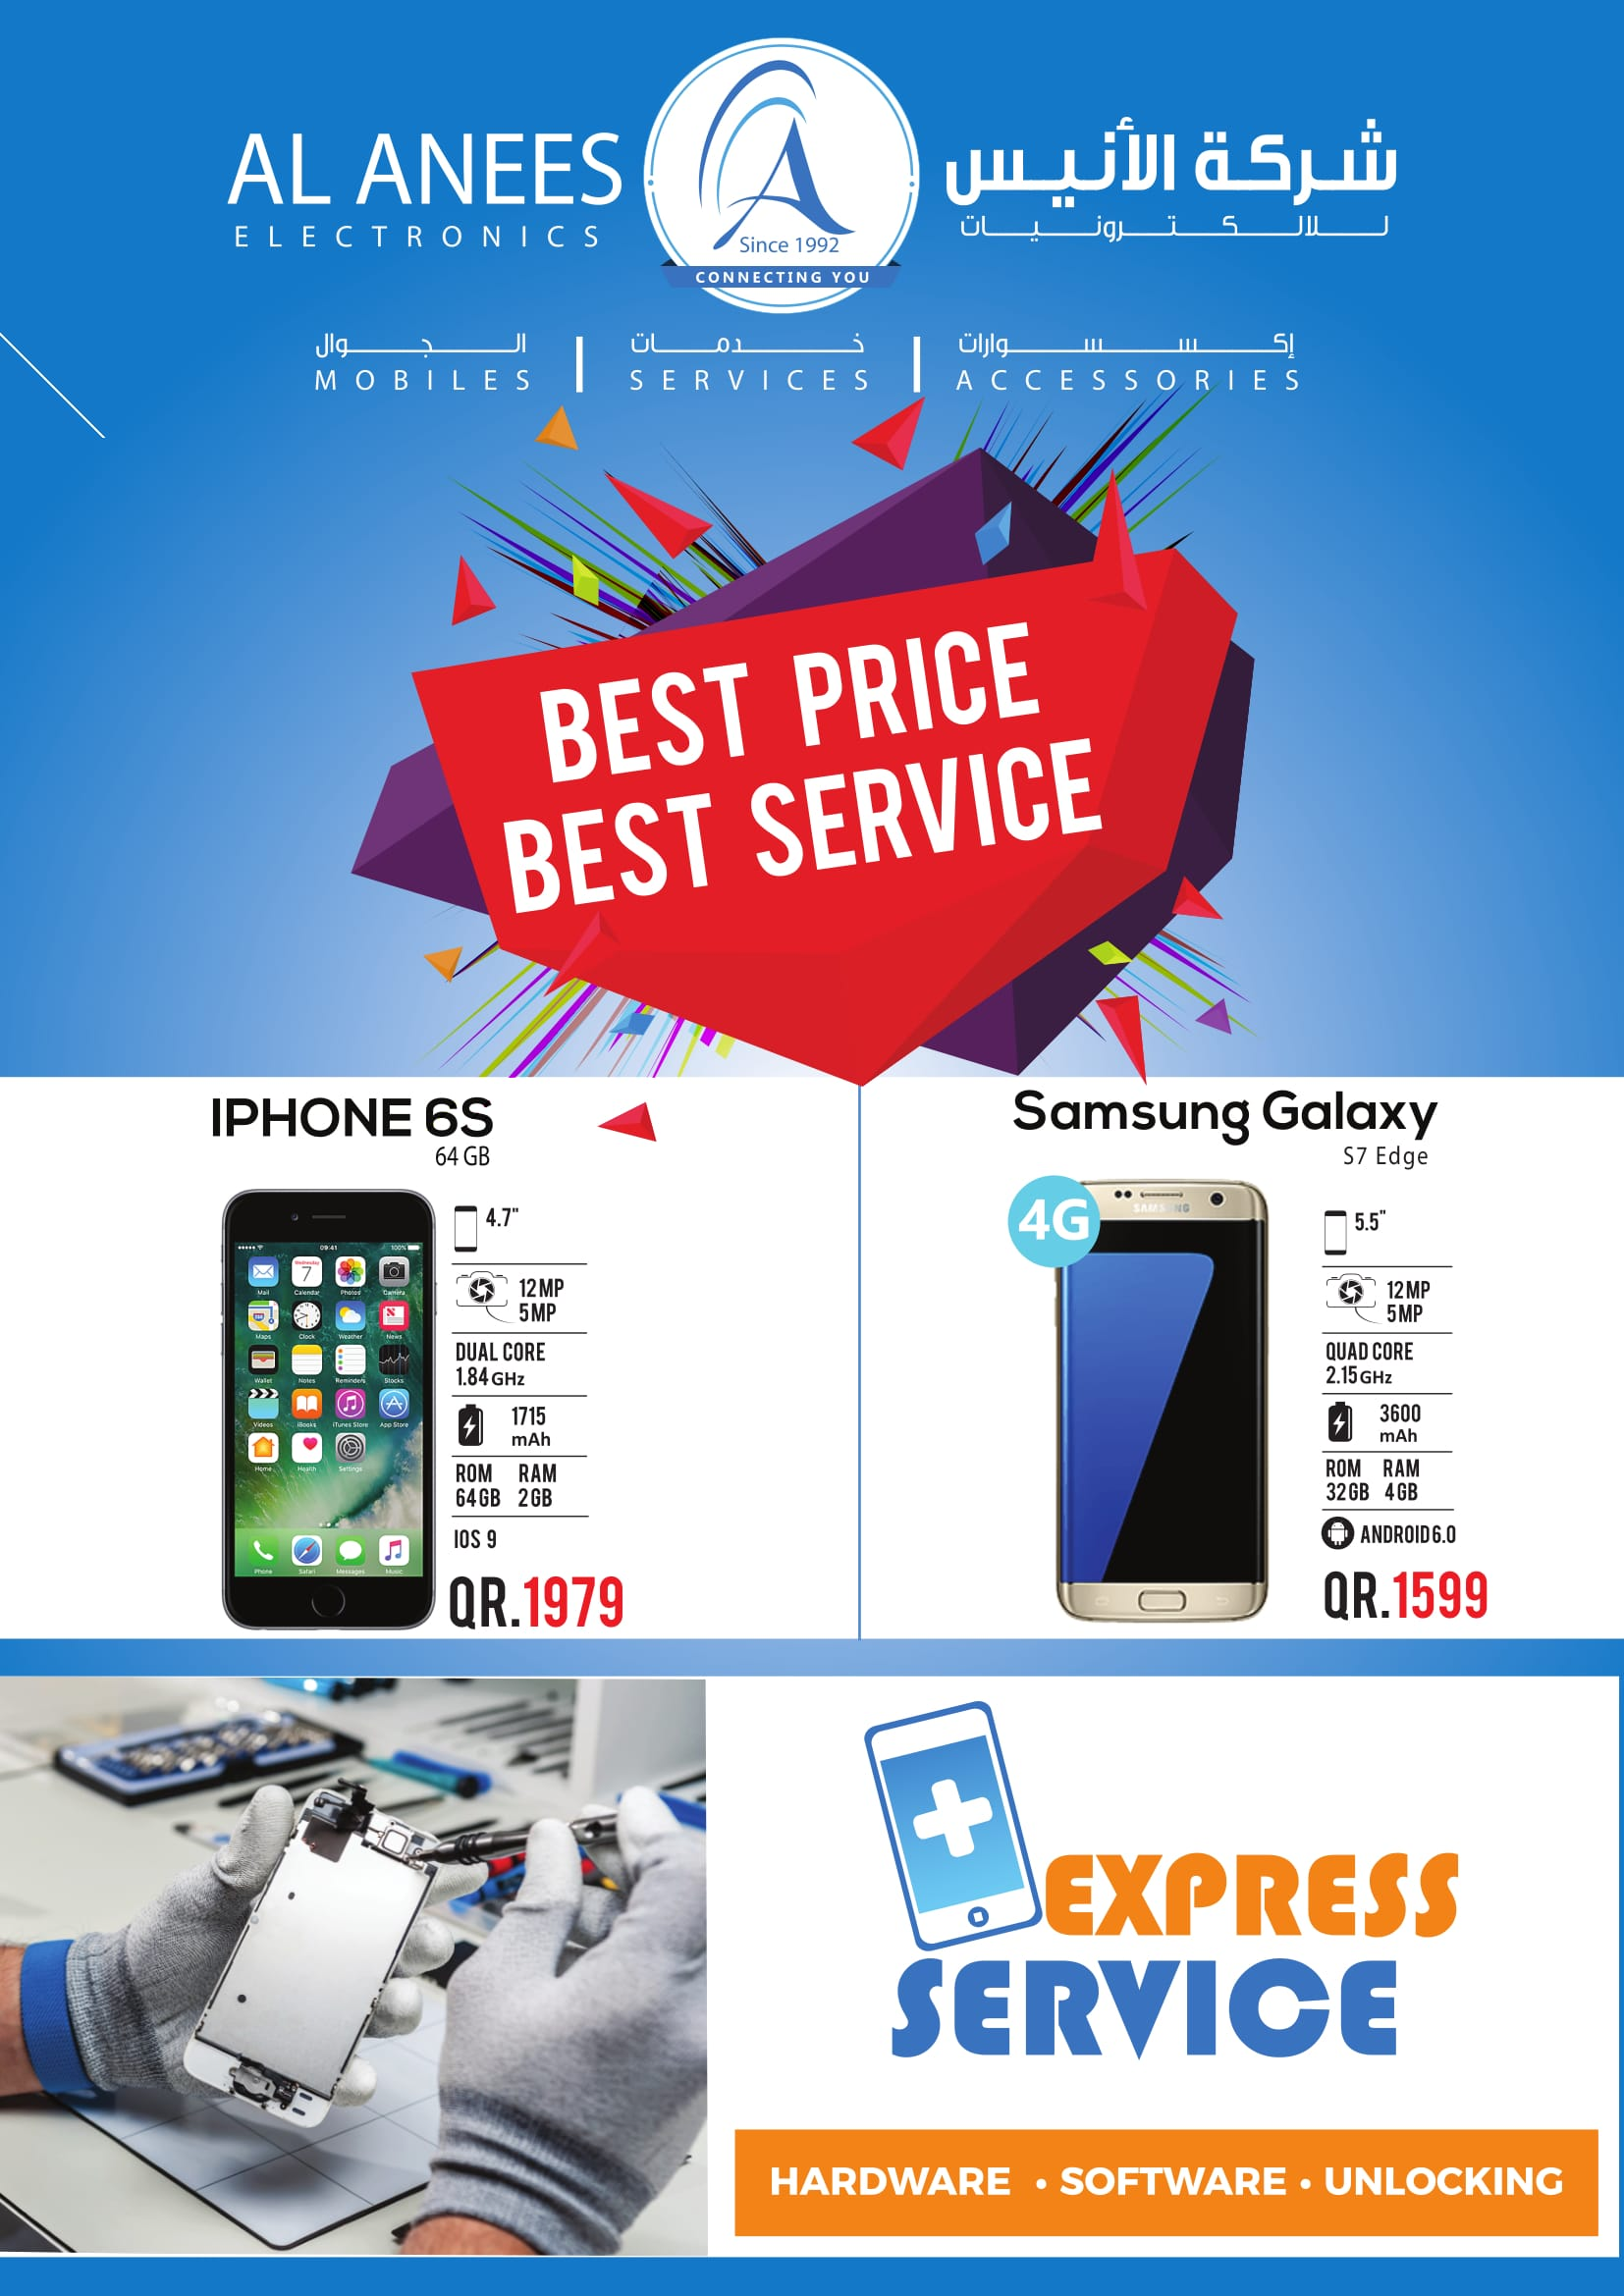 Al Anees Electronics Best Price Best Service Offer Day 18-11